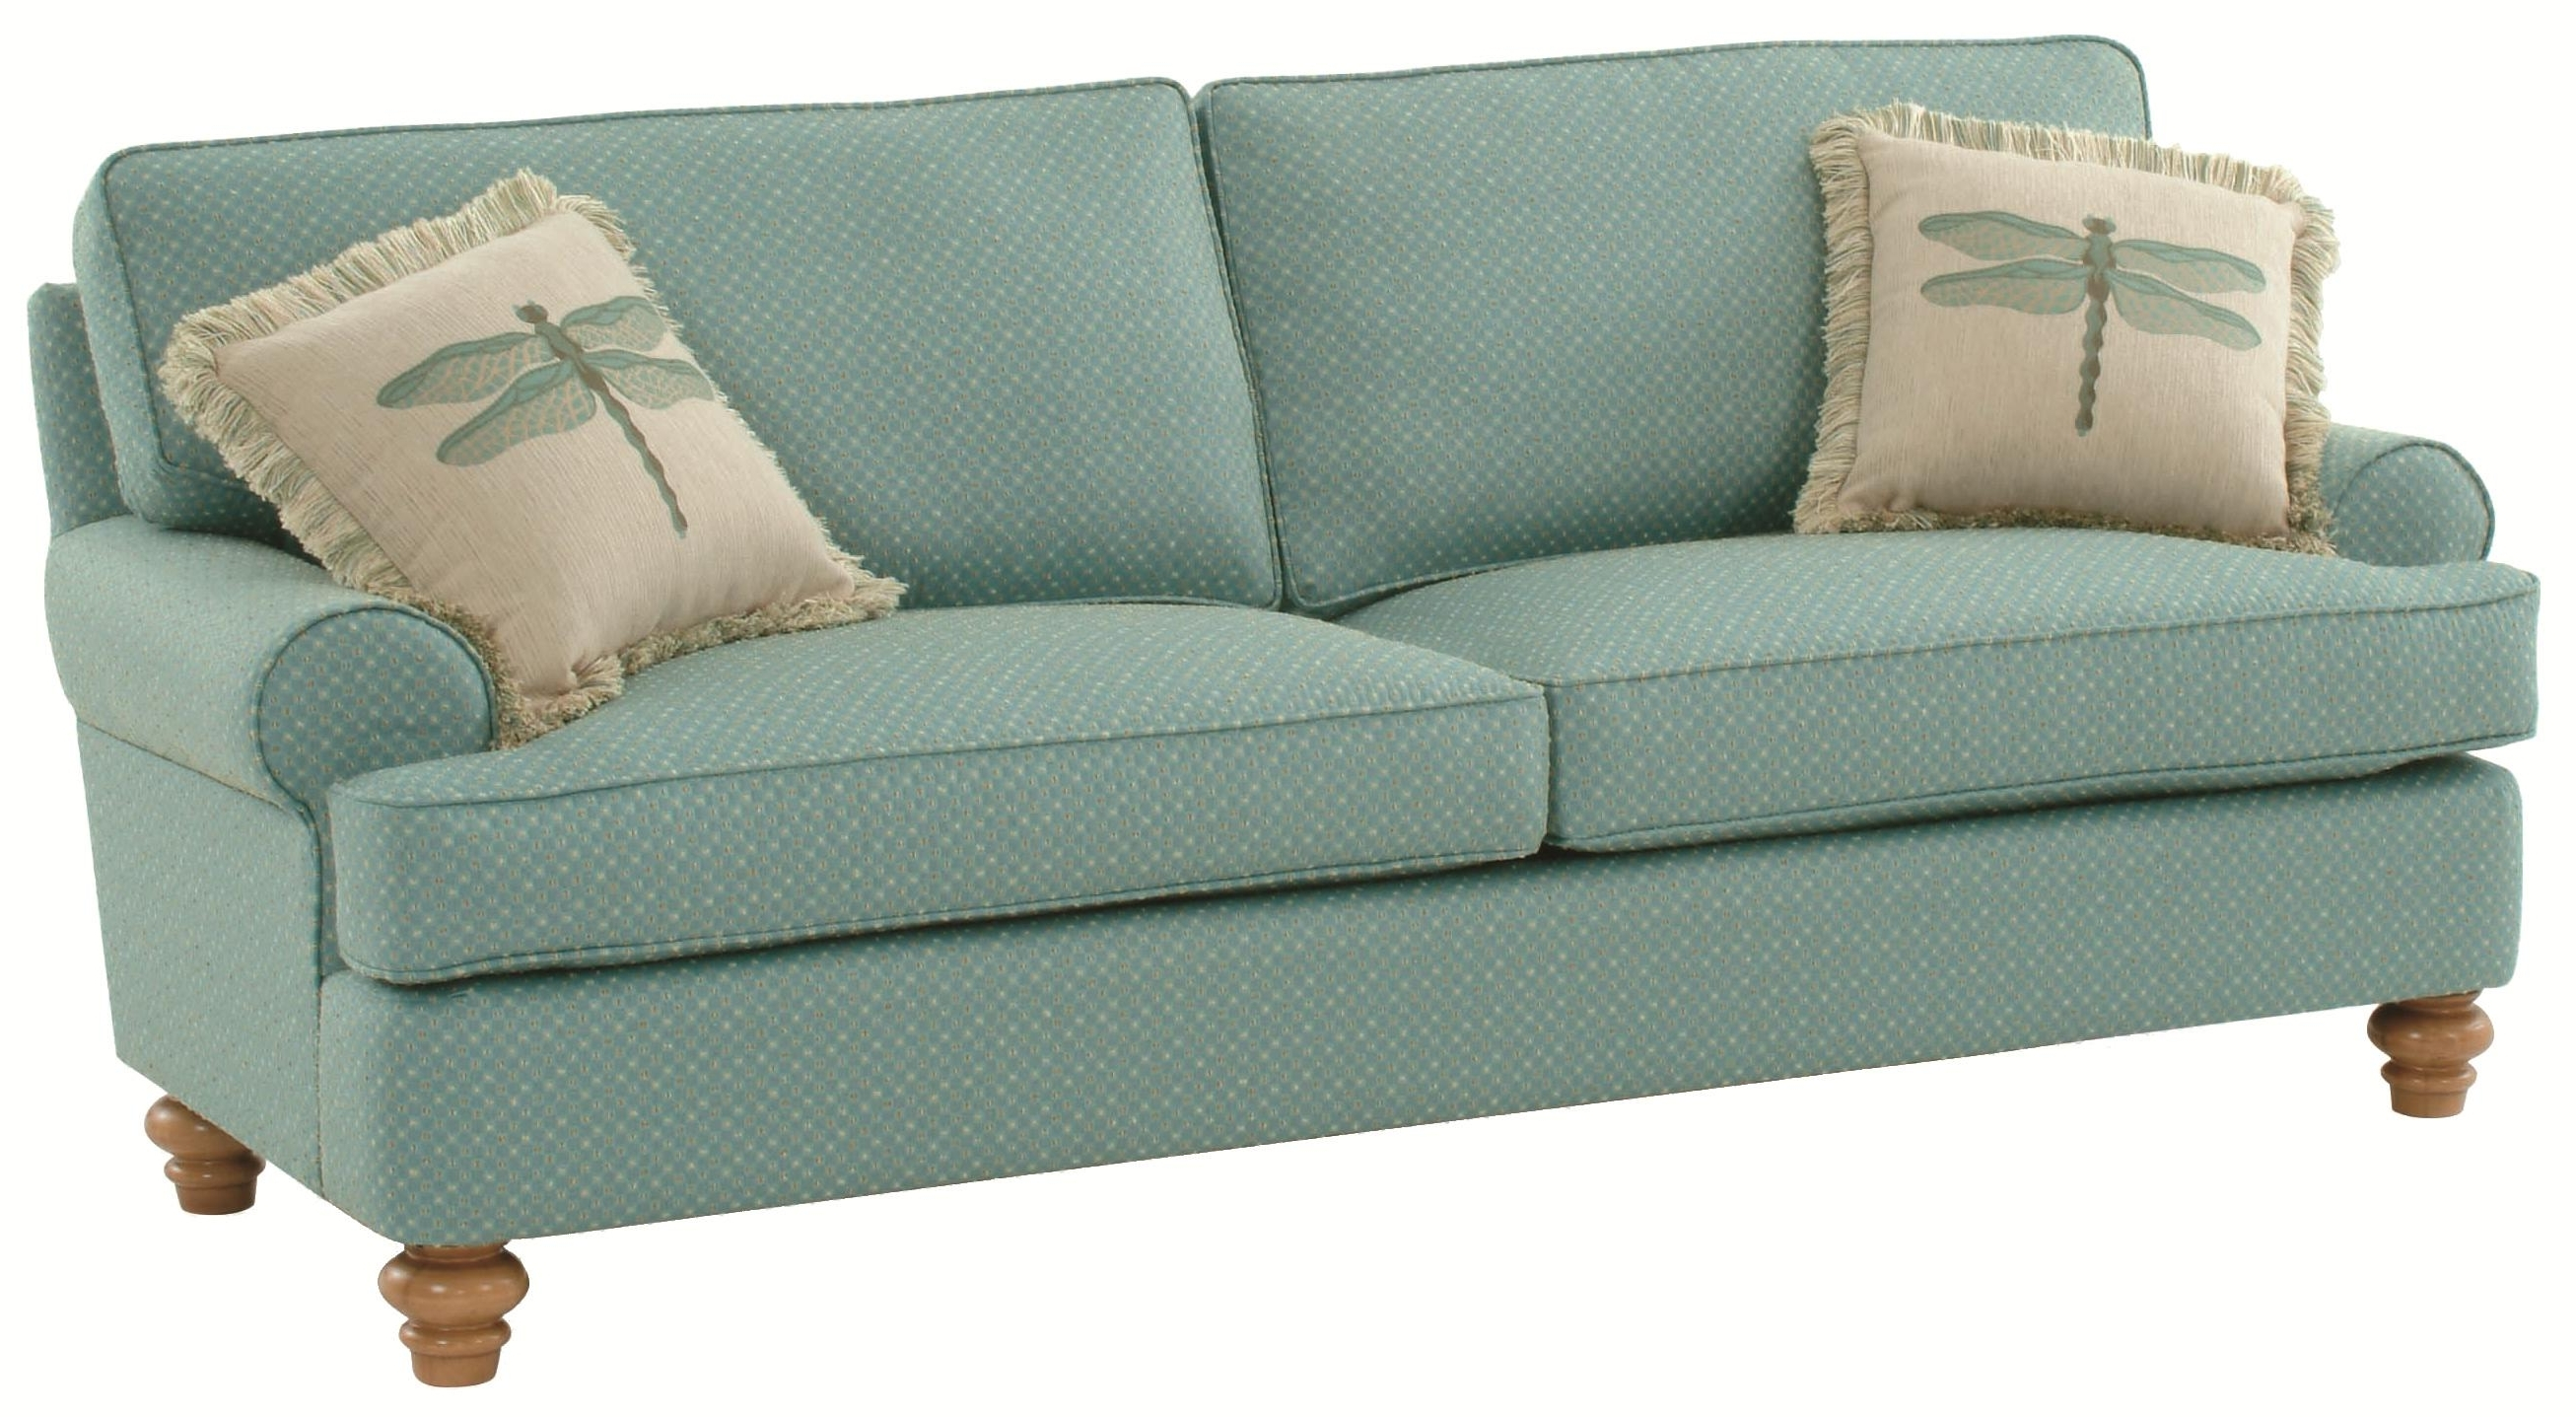 Well Liked Braxton Sofas Intended For Braxton Culler 773 Lowell Stationary Cottage Styled Sofa – Ahfa (View 3 of 15)